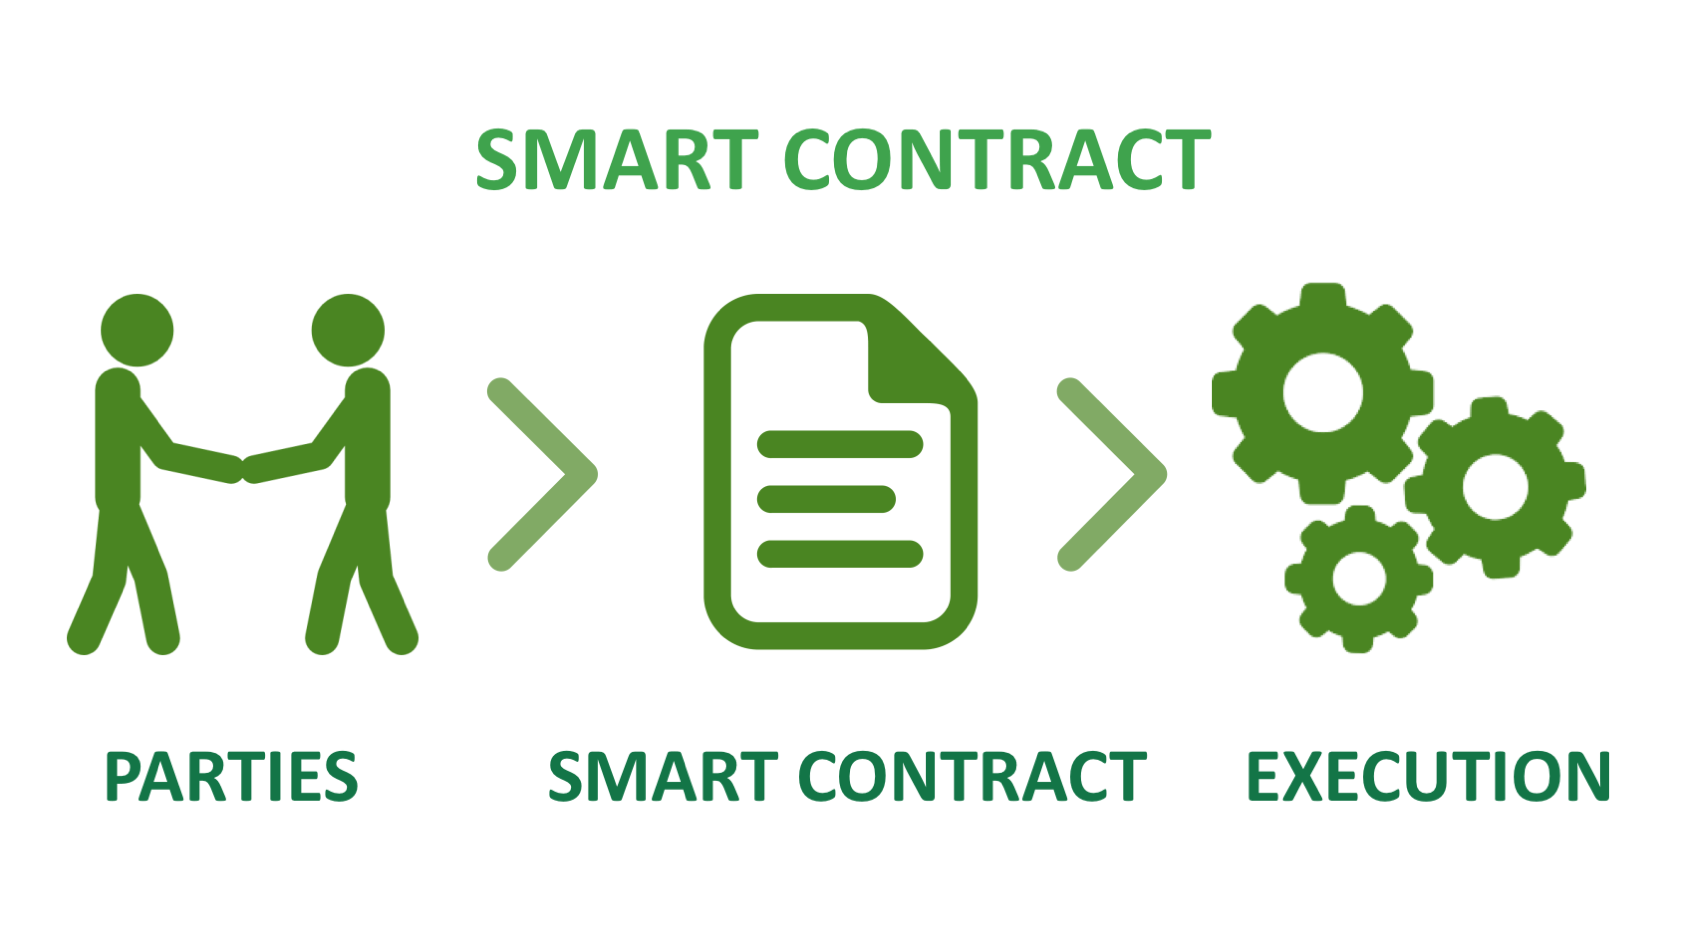 Smart Contract